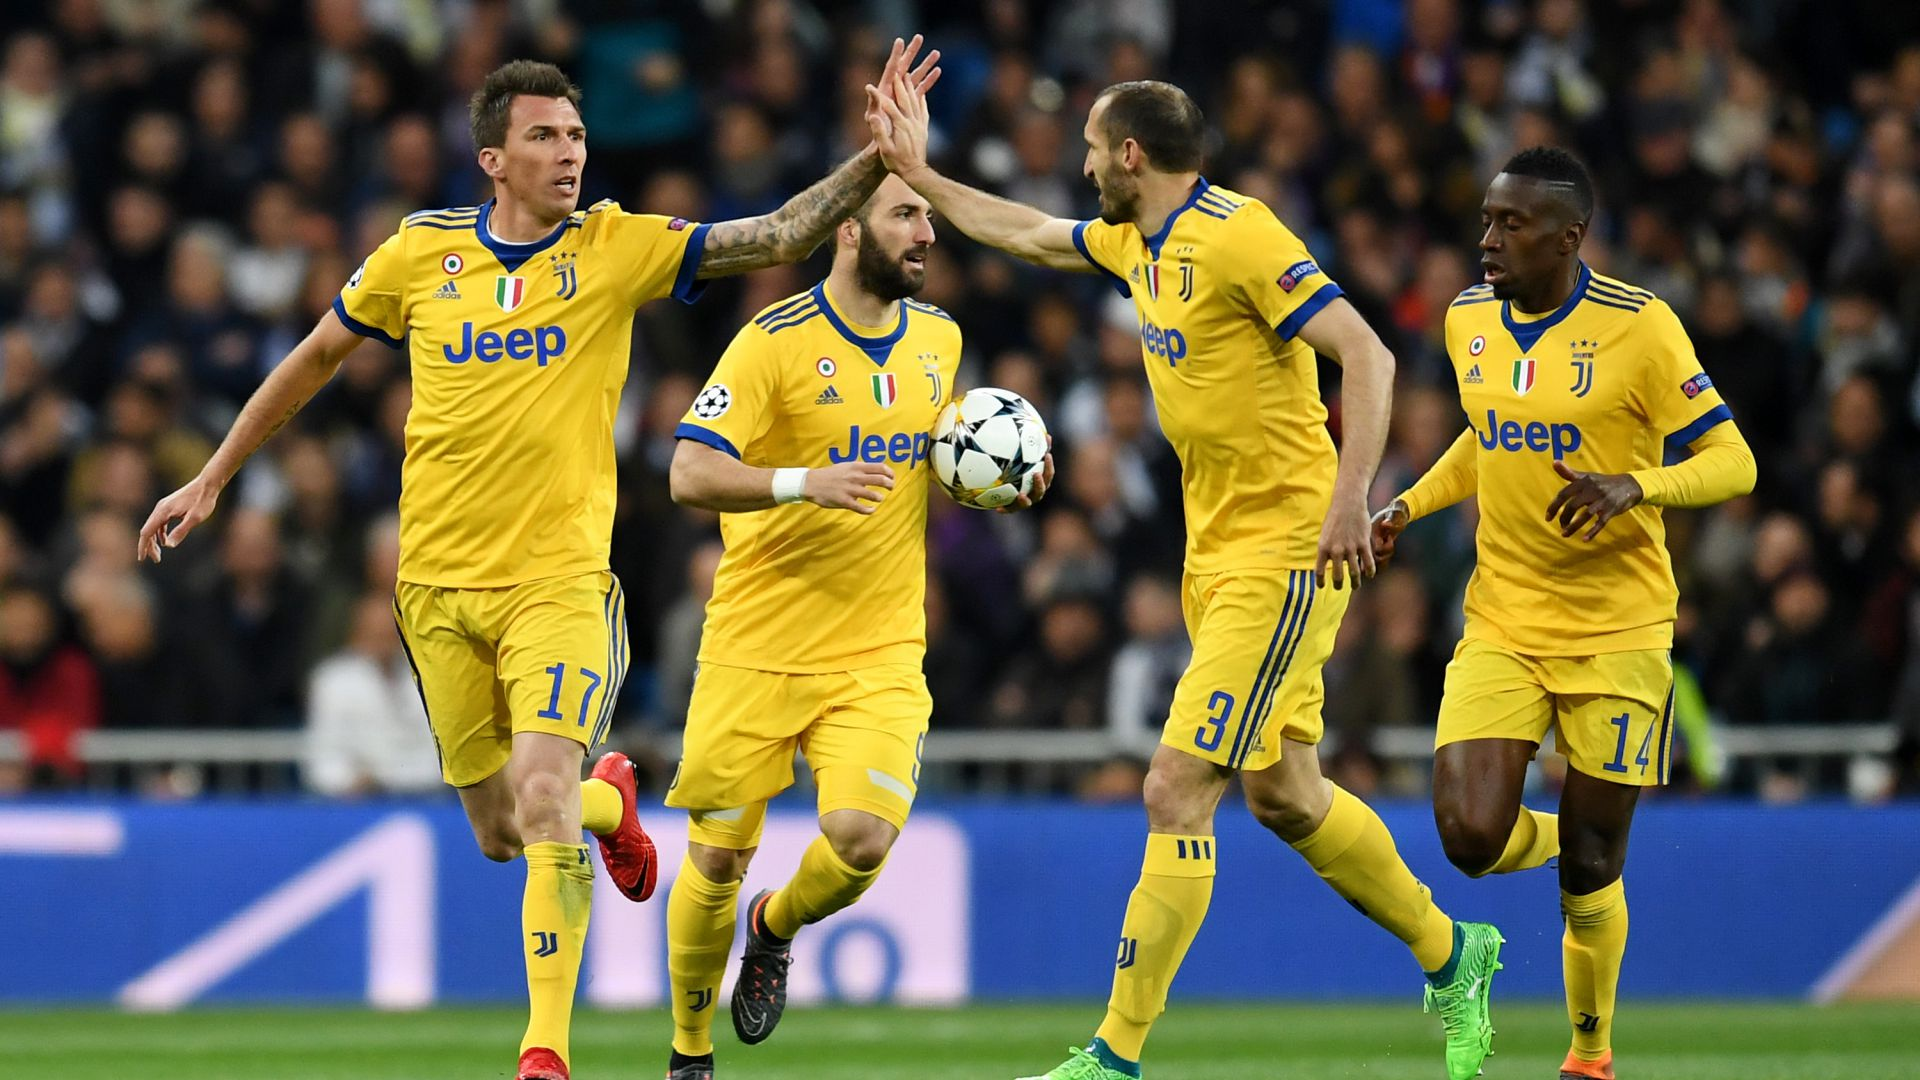 Juventus celebrates Mario Mandzukic goal vs. Real Madrid